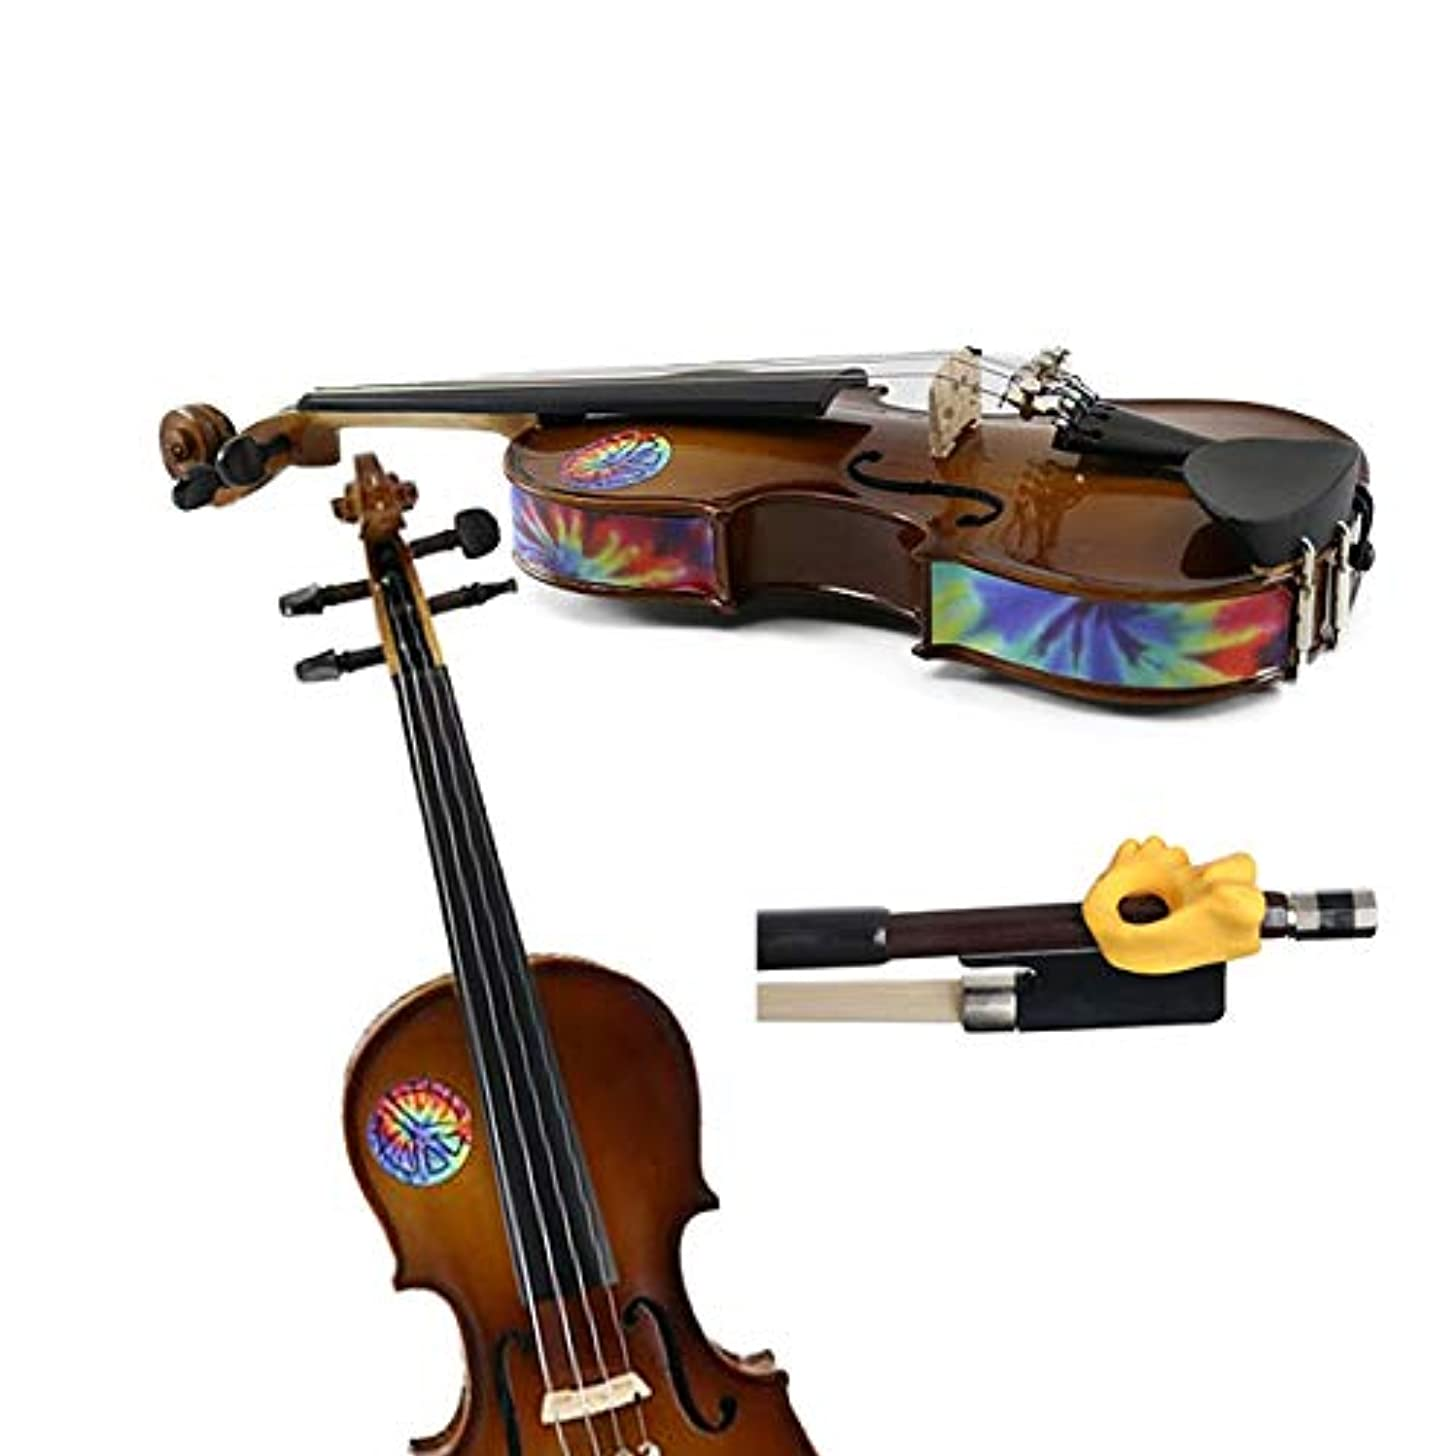 Violin Teaching Aid Pack - Hold Fish Violin Yellow Pinky Support w/Tie Die Violin Skins - Removable Violin Decals - Fits 1/2 Size Violins (Violin not included)